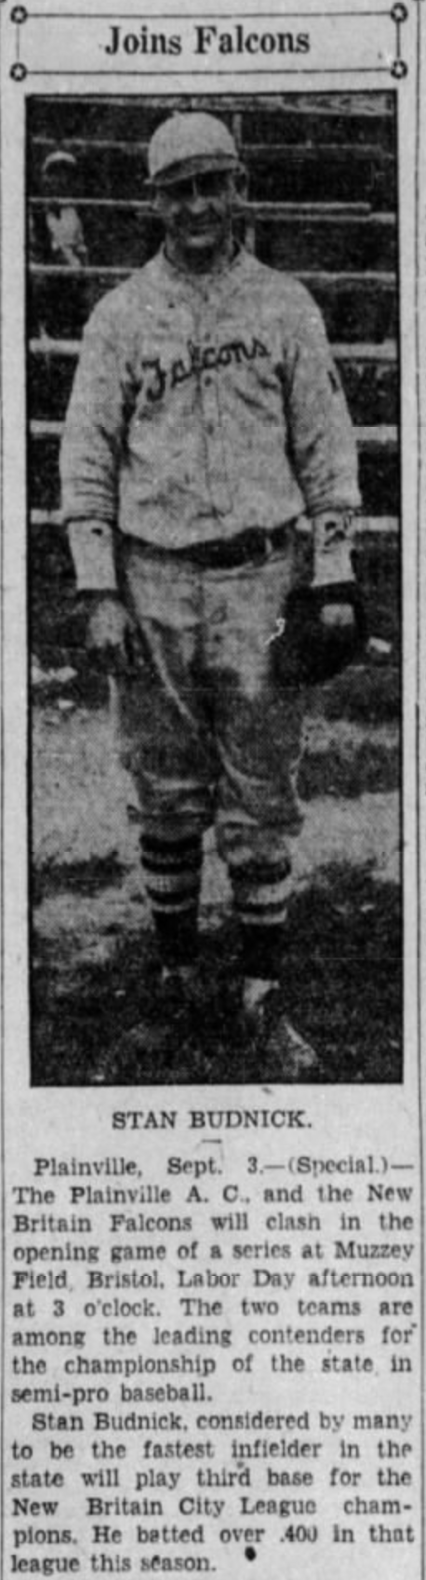 Stan Budnick, New Britain Falcons, 1932.